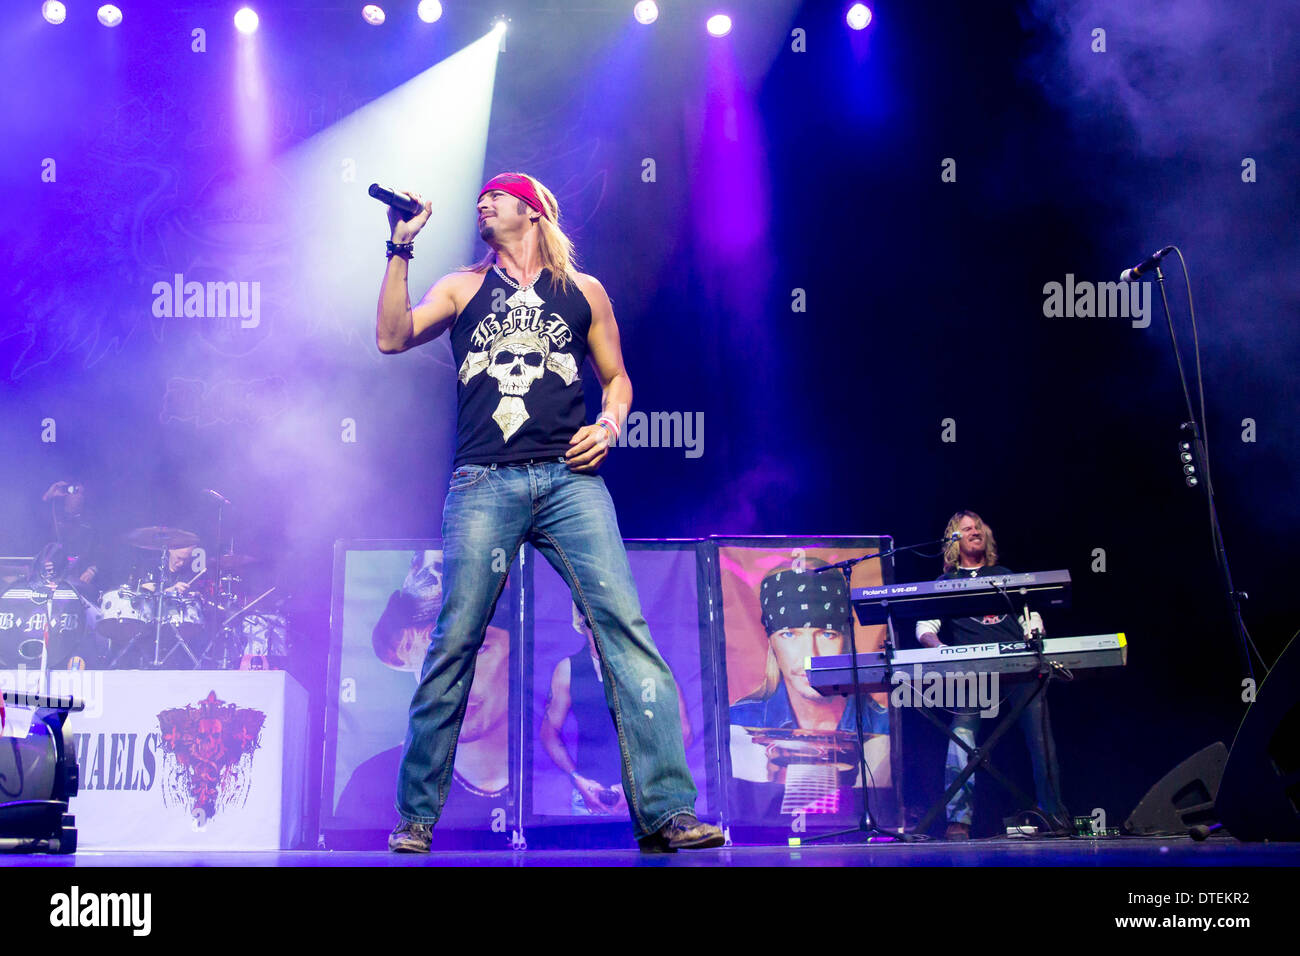 Bret michaels motor city casino new frontier casino attractions